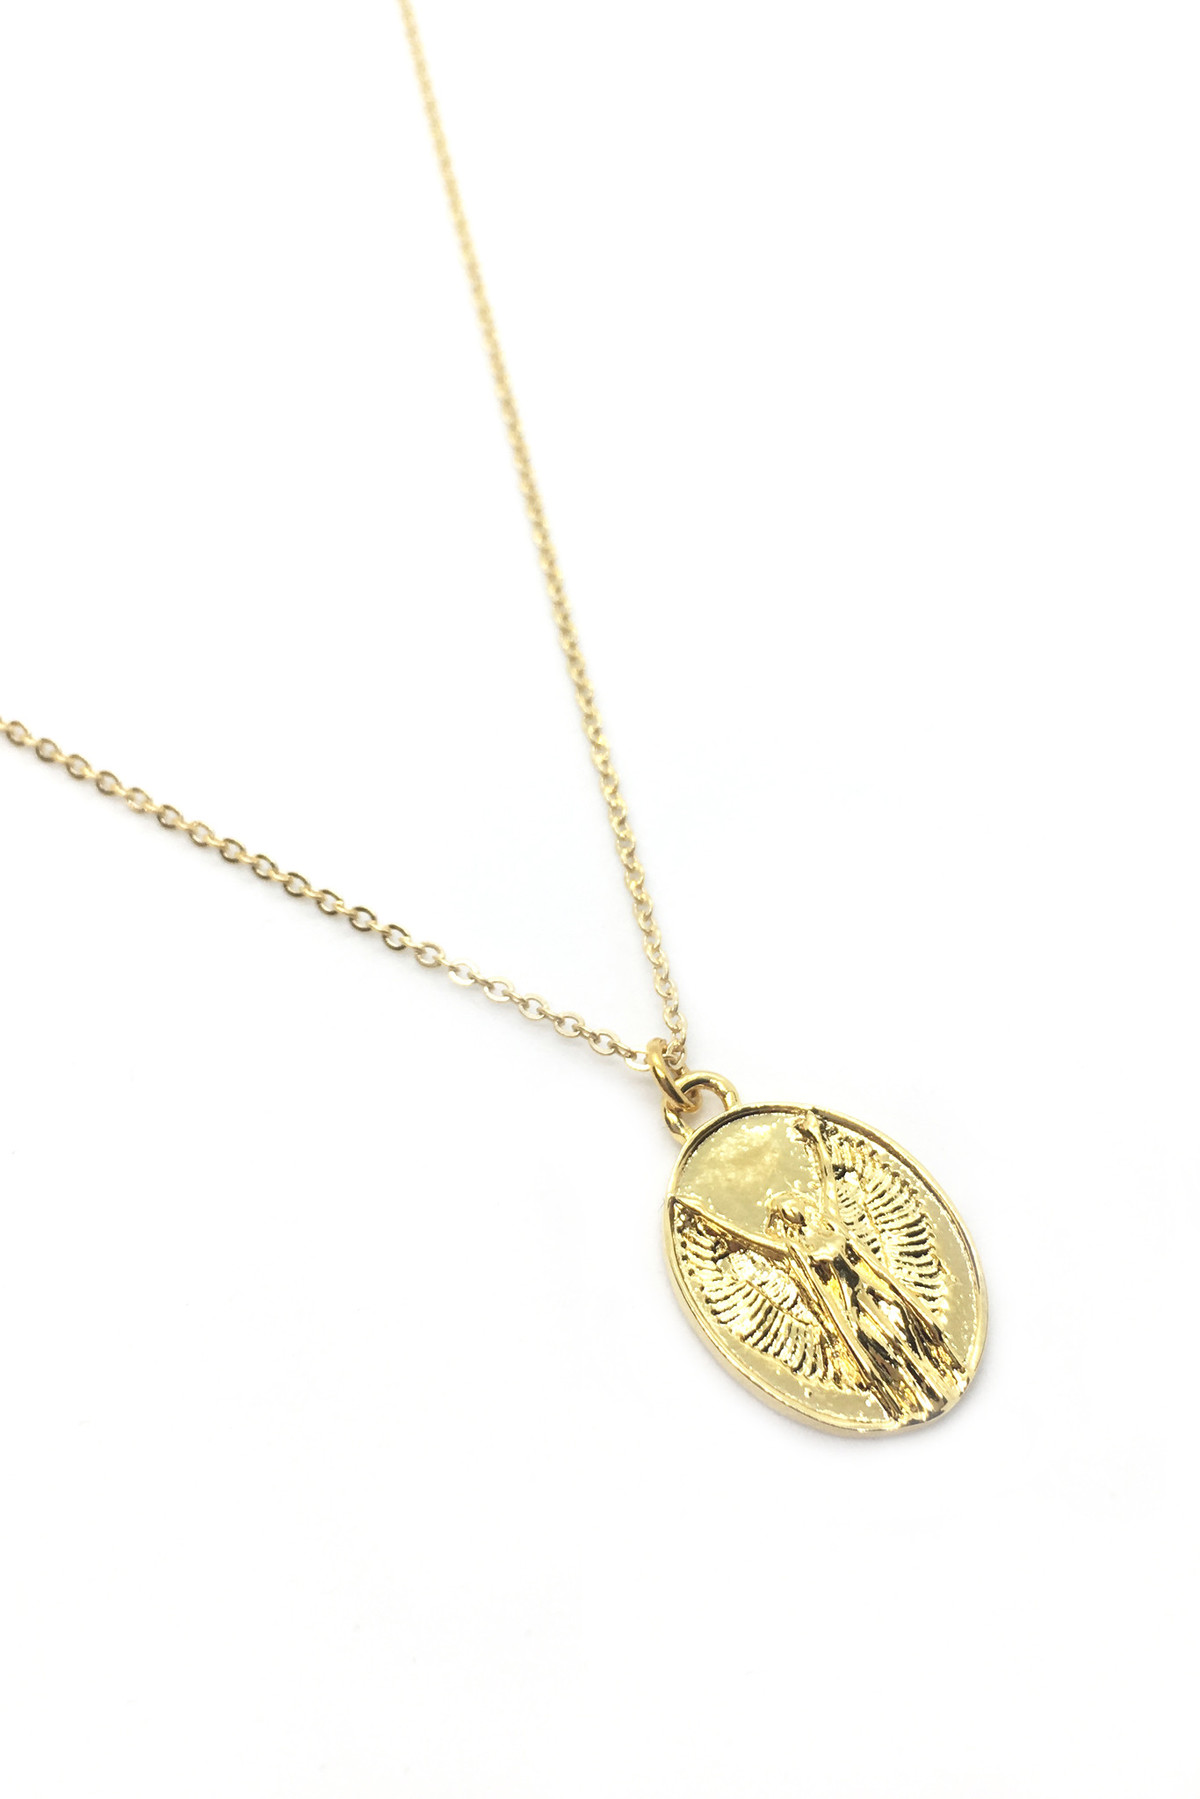 logan custom diamond jewelry necklace products hollowell horizvirgonecklace constellation virgo collections necklaces name